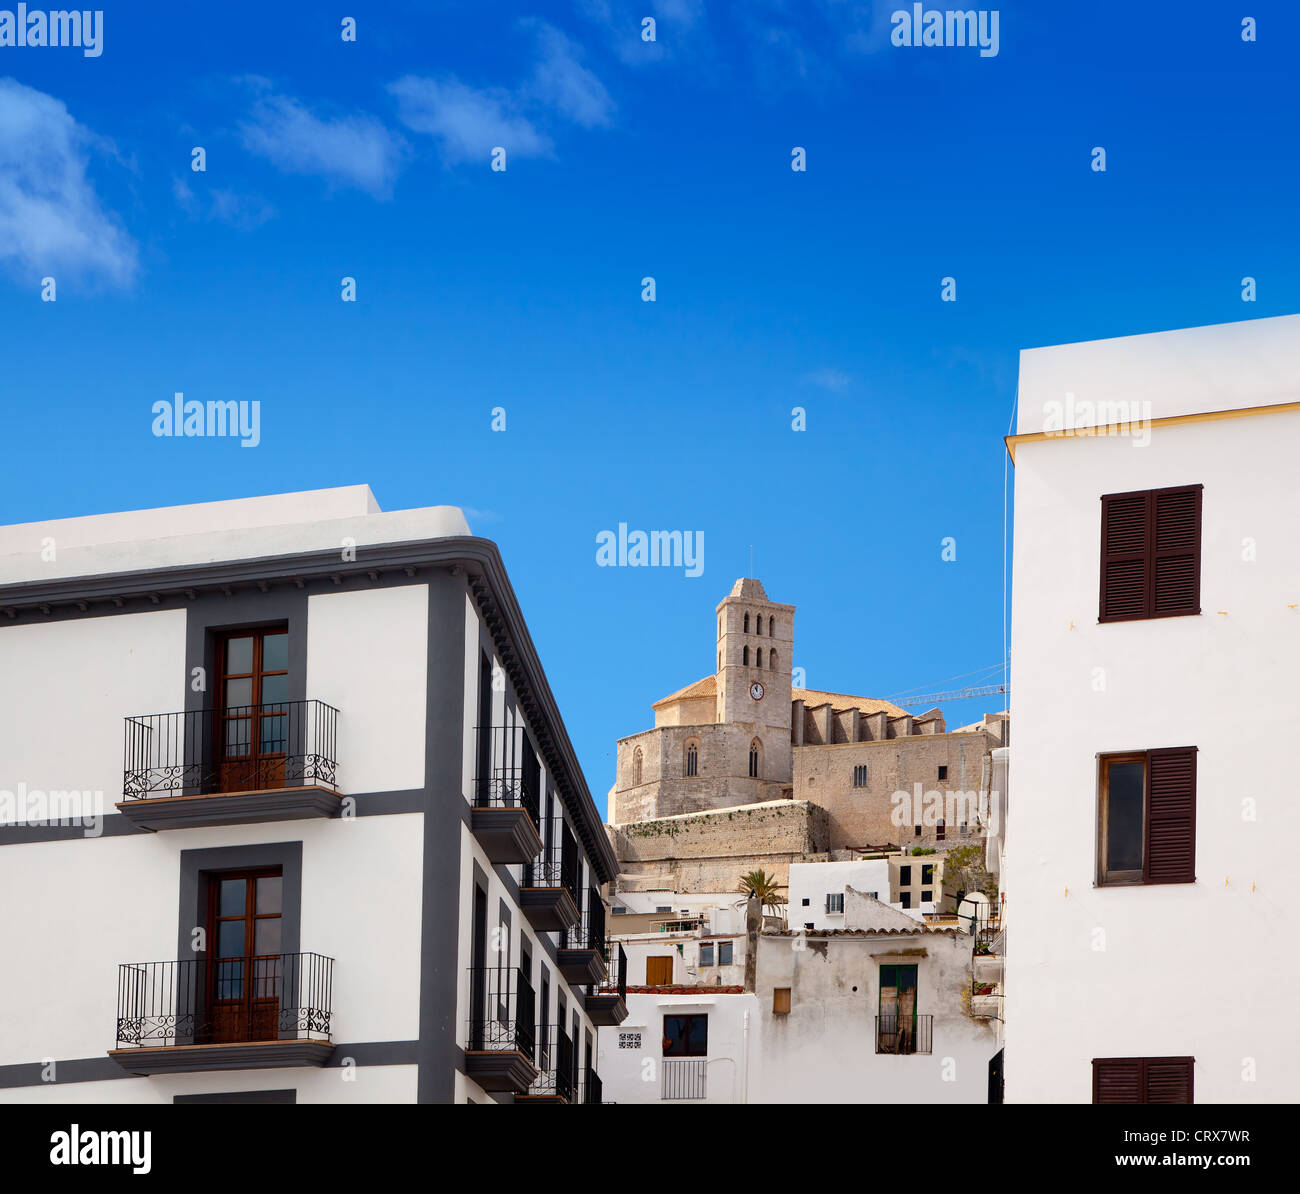 Eivissa Ibiza town with church under summer blue sky - Stock Image